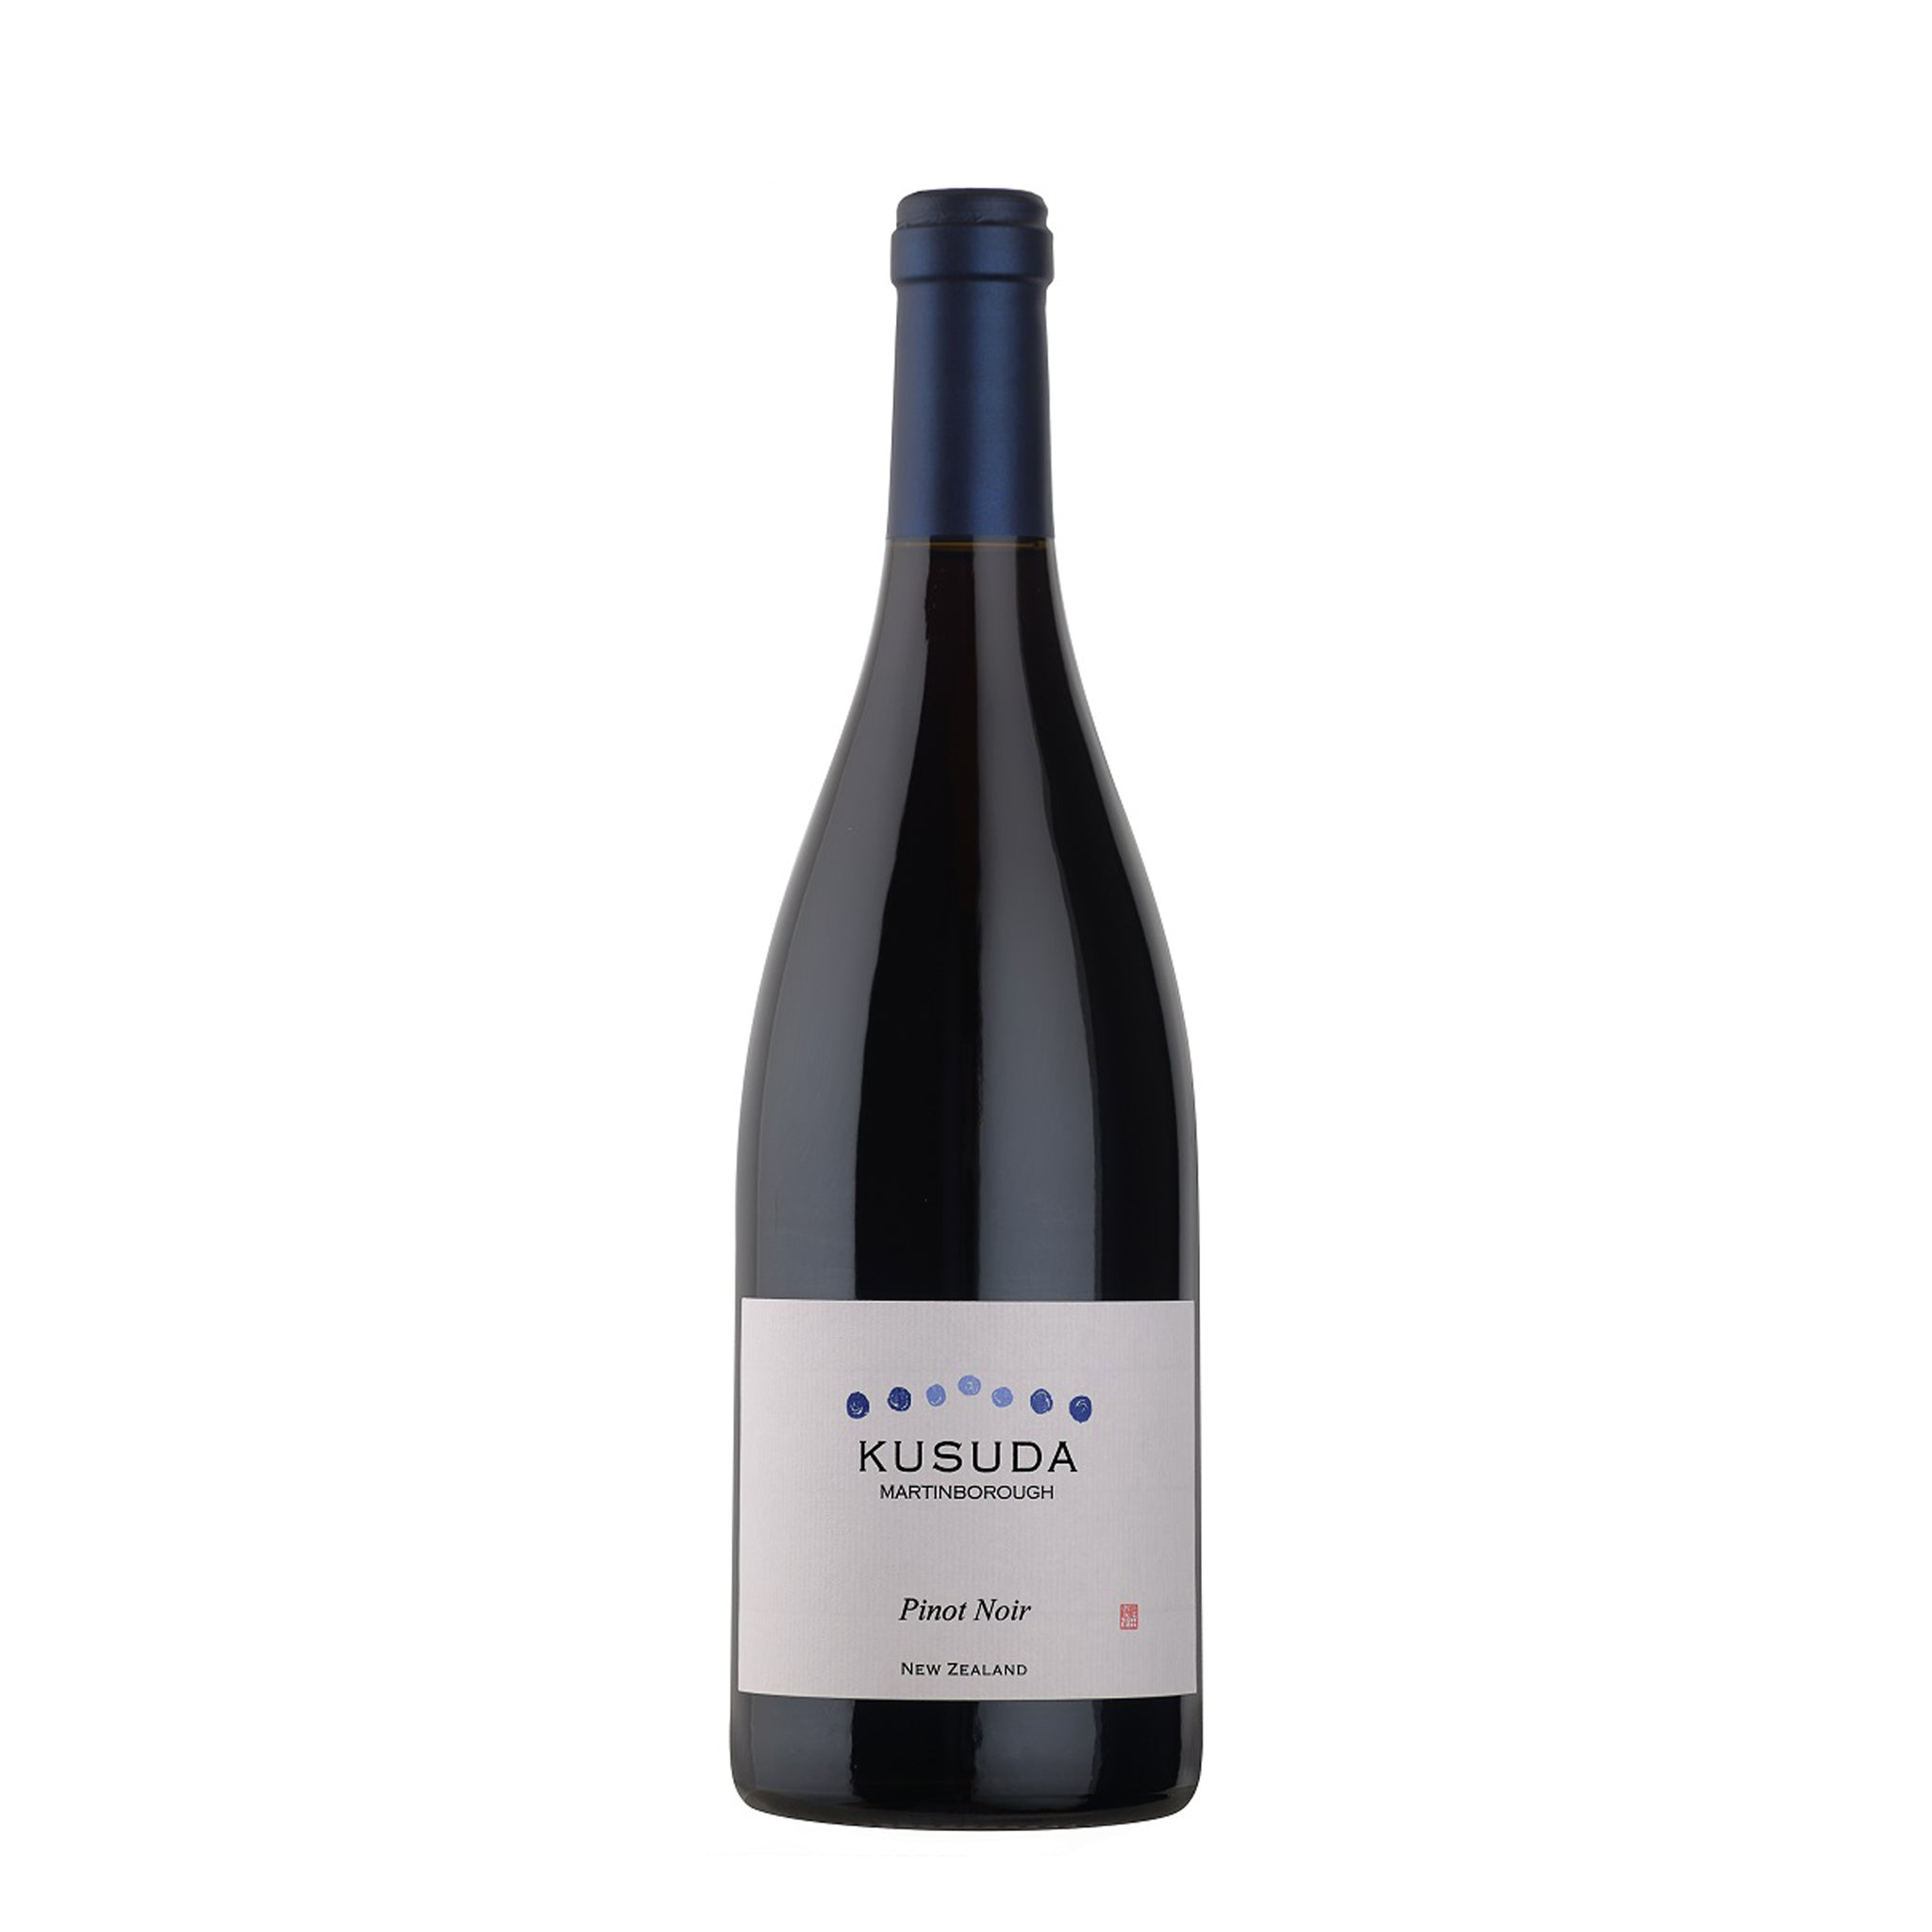 Kusuda Martinborough Pinot Noir 2013 750ml